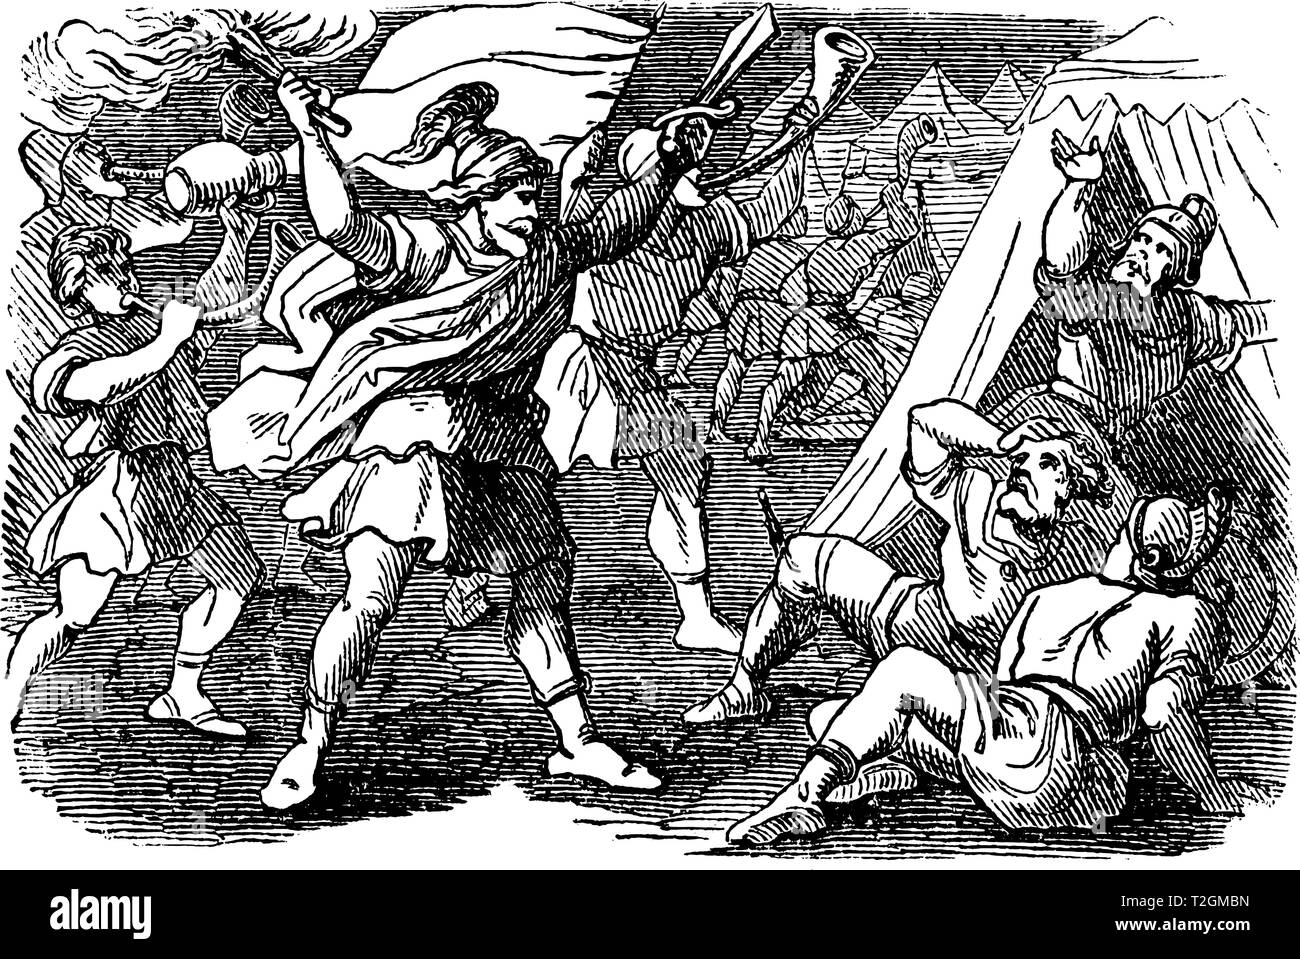 Vintage antique illustration and line drawing or engraving of biblical Israelites attacking camp of Midianites under the lead of Gideon.From Biblische - Stock Image